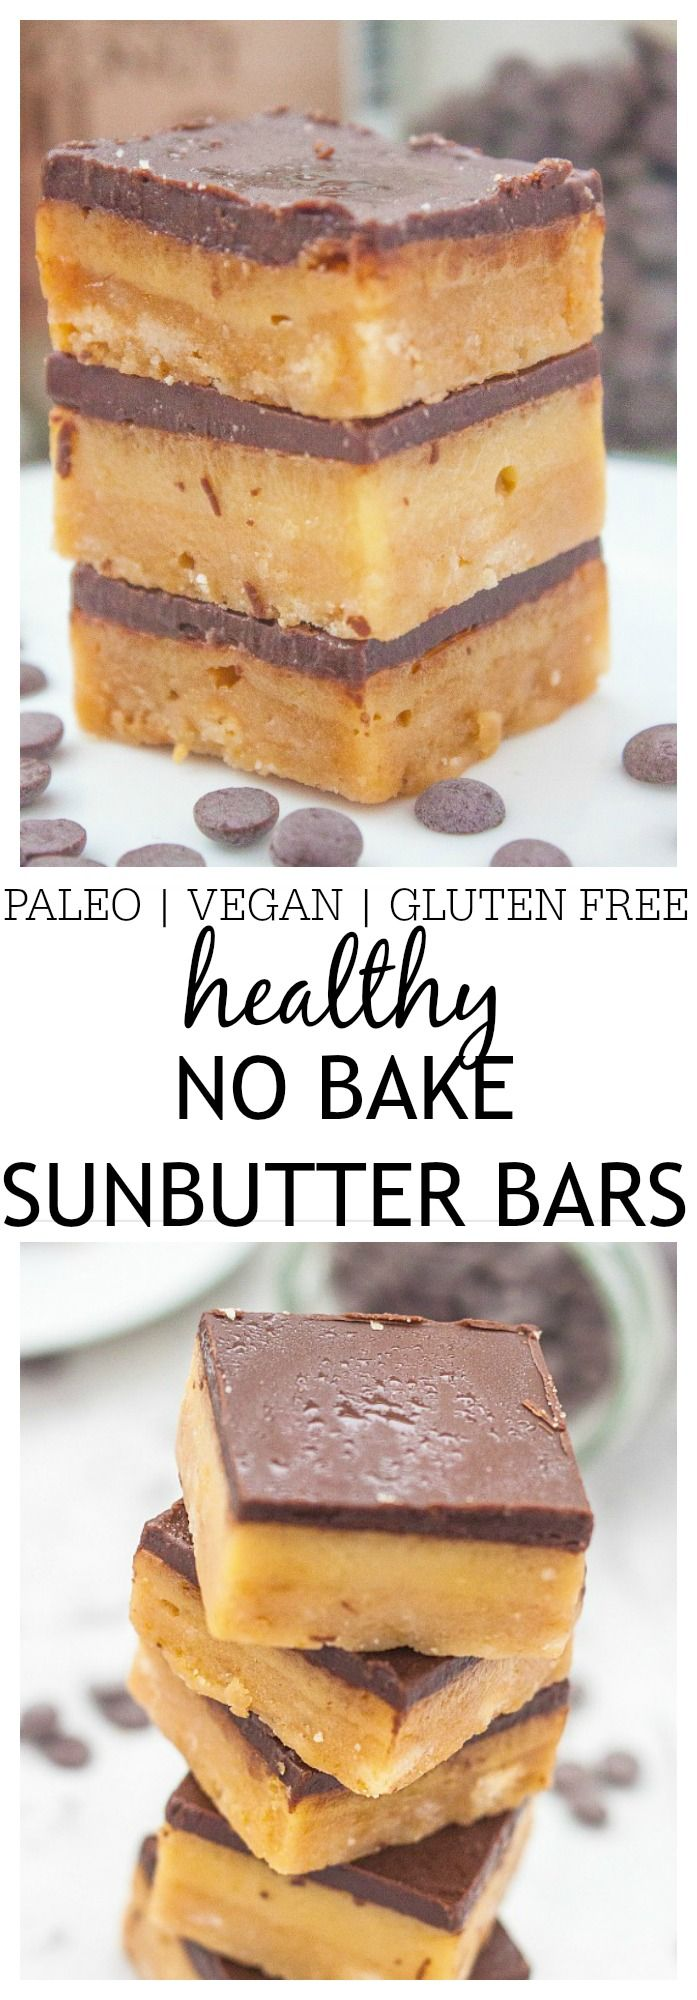 Healthy No Bake SunButter Bars - These No Bake SunButter Bars take just 10 minutes to whip up and can easily be adapted for those with allergies! Completely gluten free, vegan and paleo!  @thebigmansworld -thebigmansworld.com